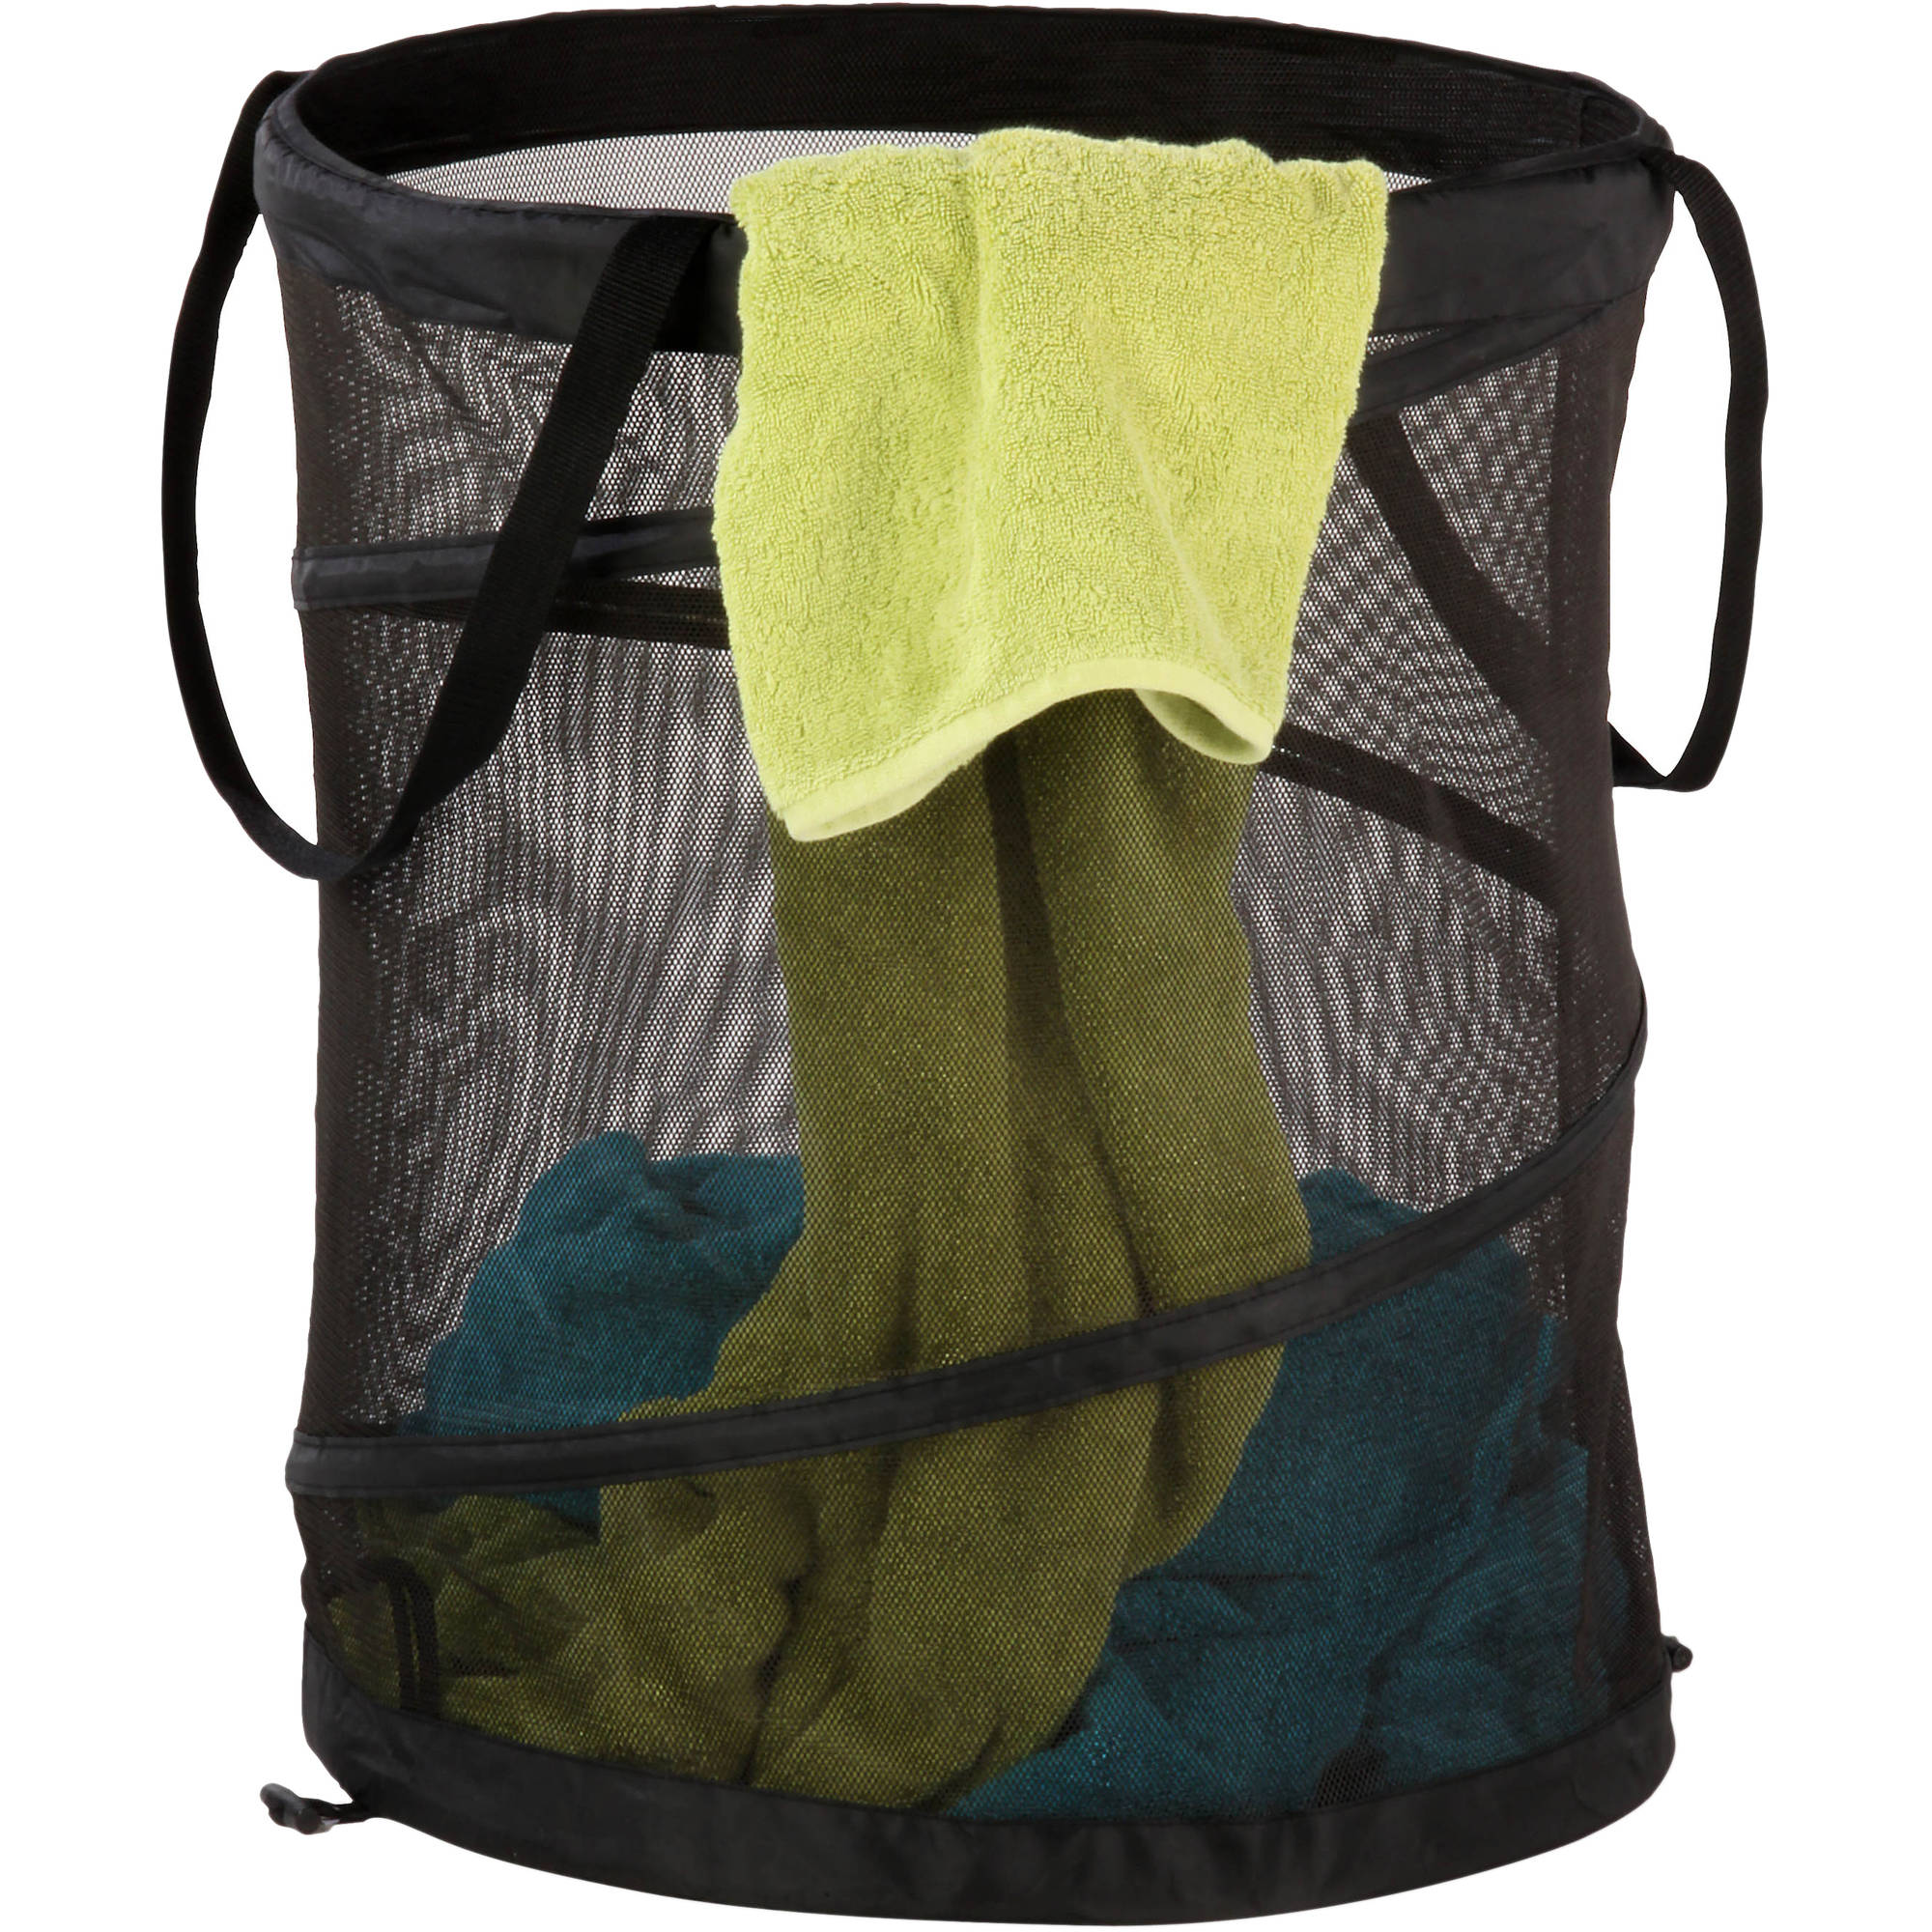 Honey Can Do Large Mesh Pop-Up Hamper with Handles, Multicolor